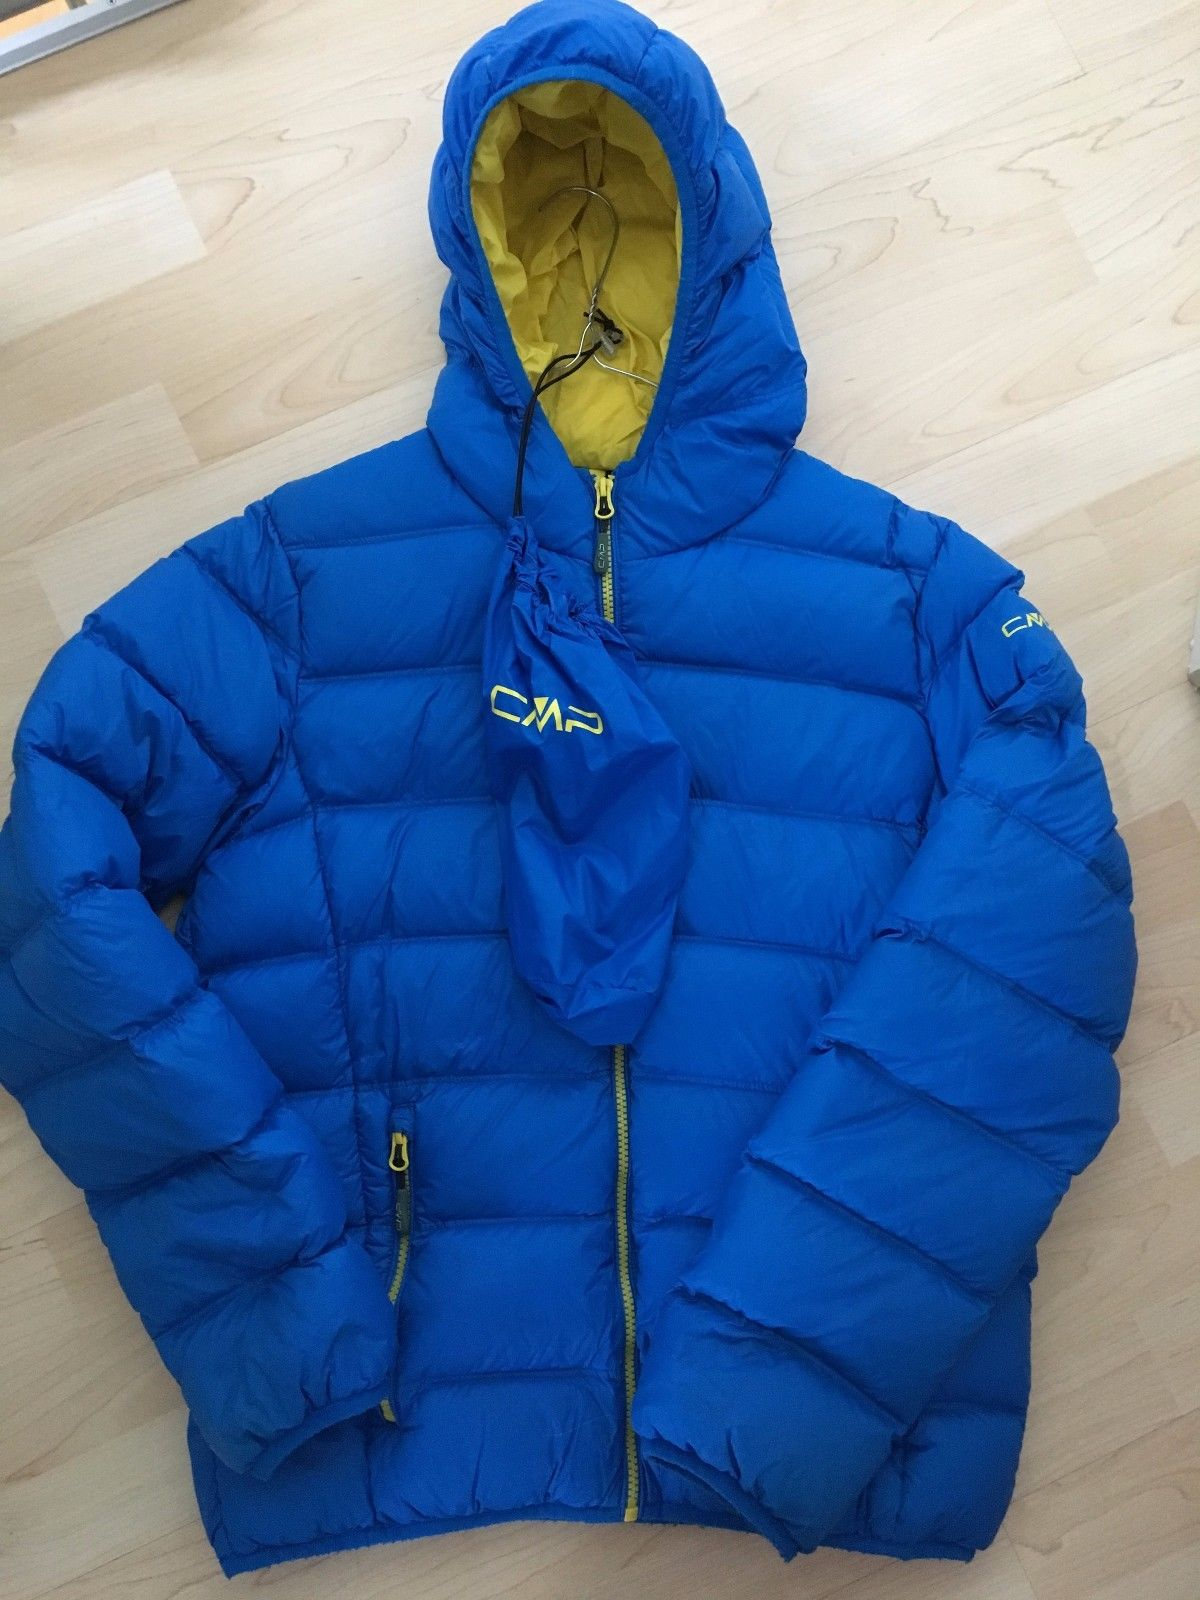 CMP Daunenjacke Gr.176 Winter royalblau superleicht